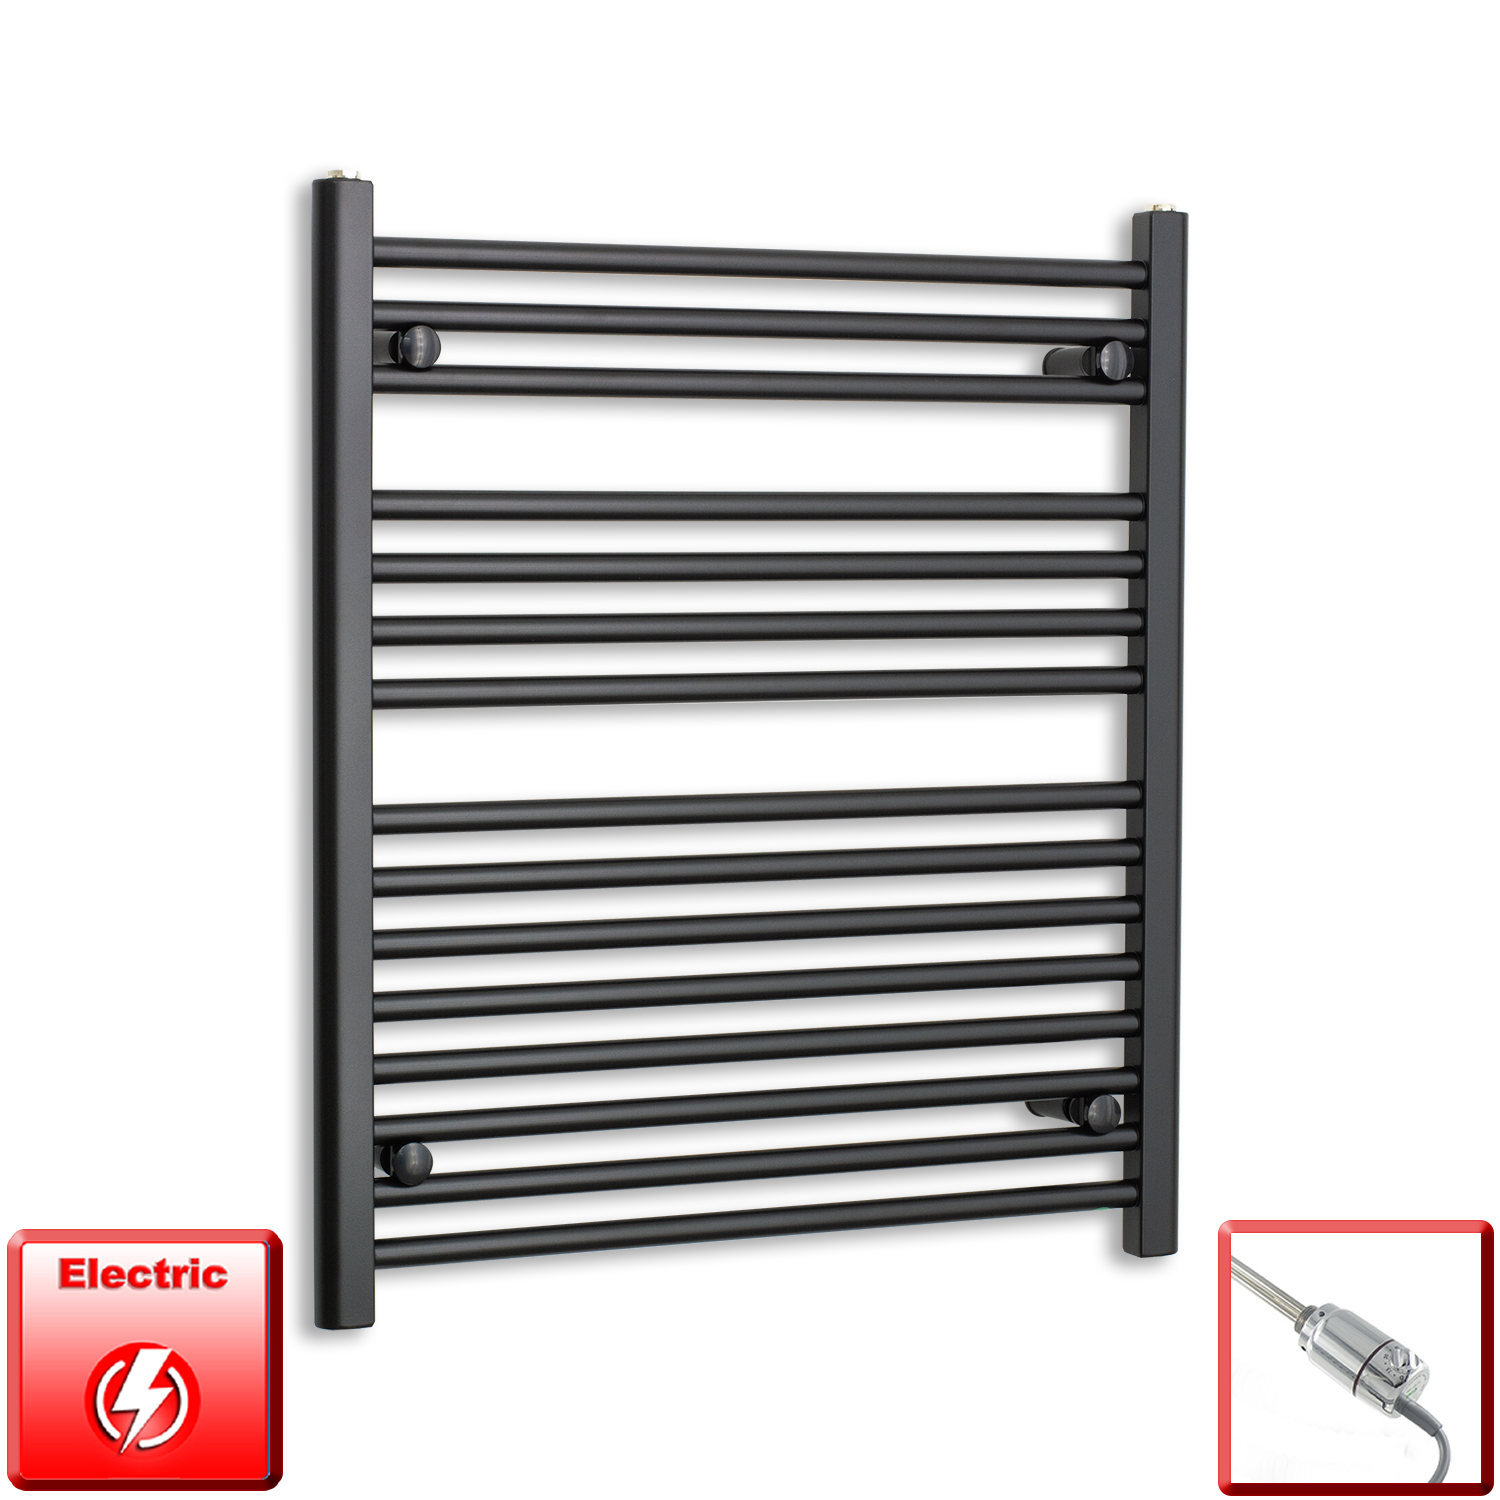 700mm Wide 800mm High Pre-Filled Black Electric Towel Rail Radiator With Thermostatic GT Element